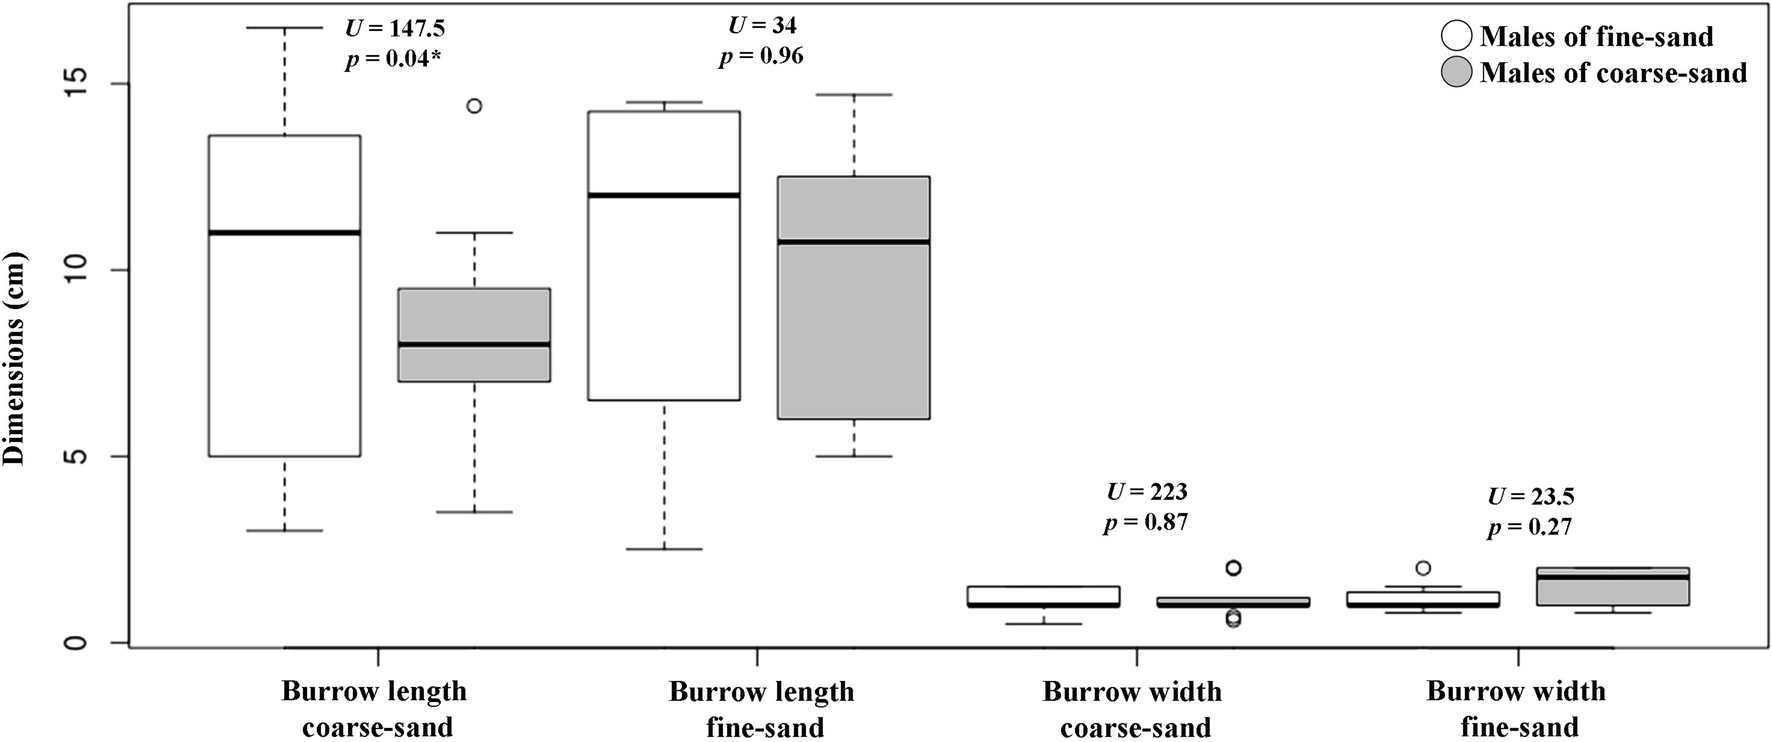 A matter of choice: substrate preference by burrow-digging